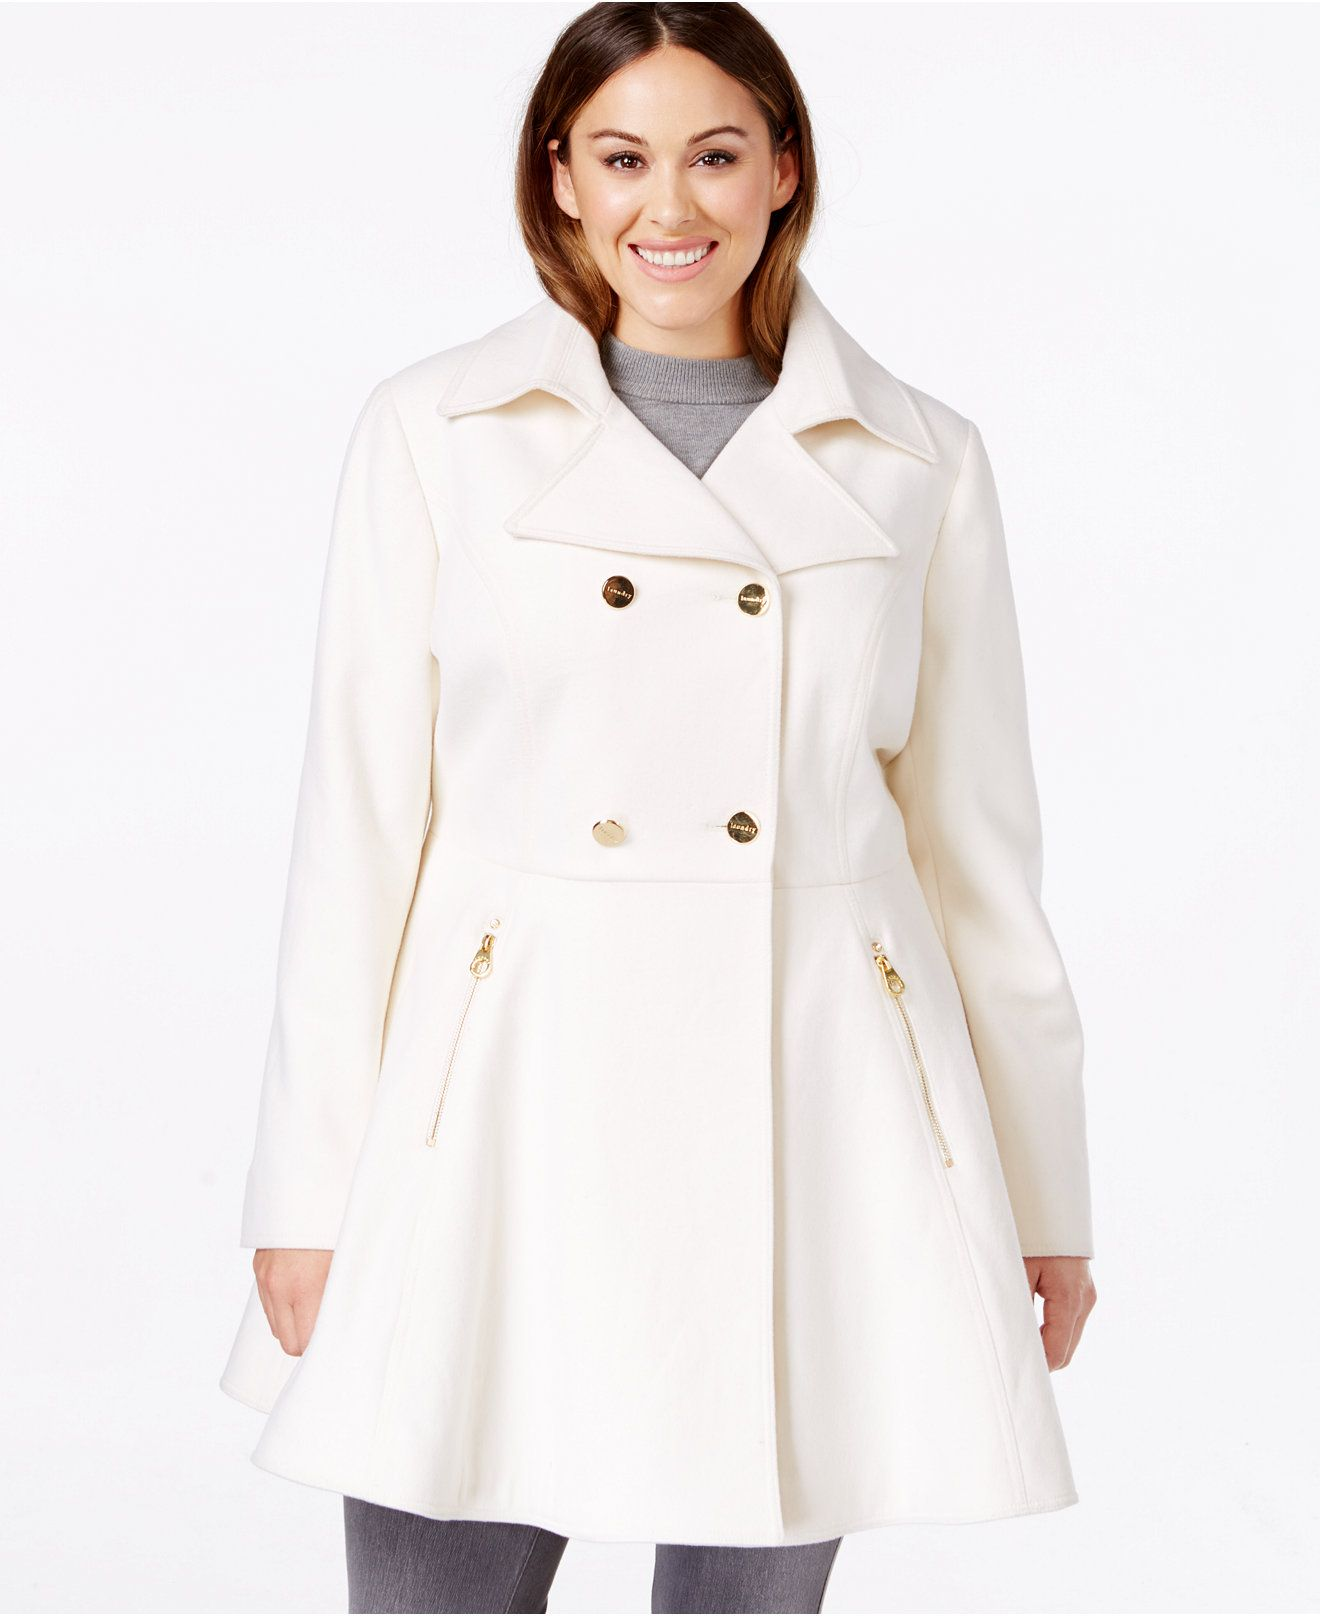 laundry by shelli segal plus size double breasted flared peacoat #2: 5bbb2e00aa3b e64b2ea2431e